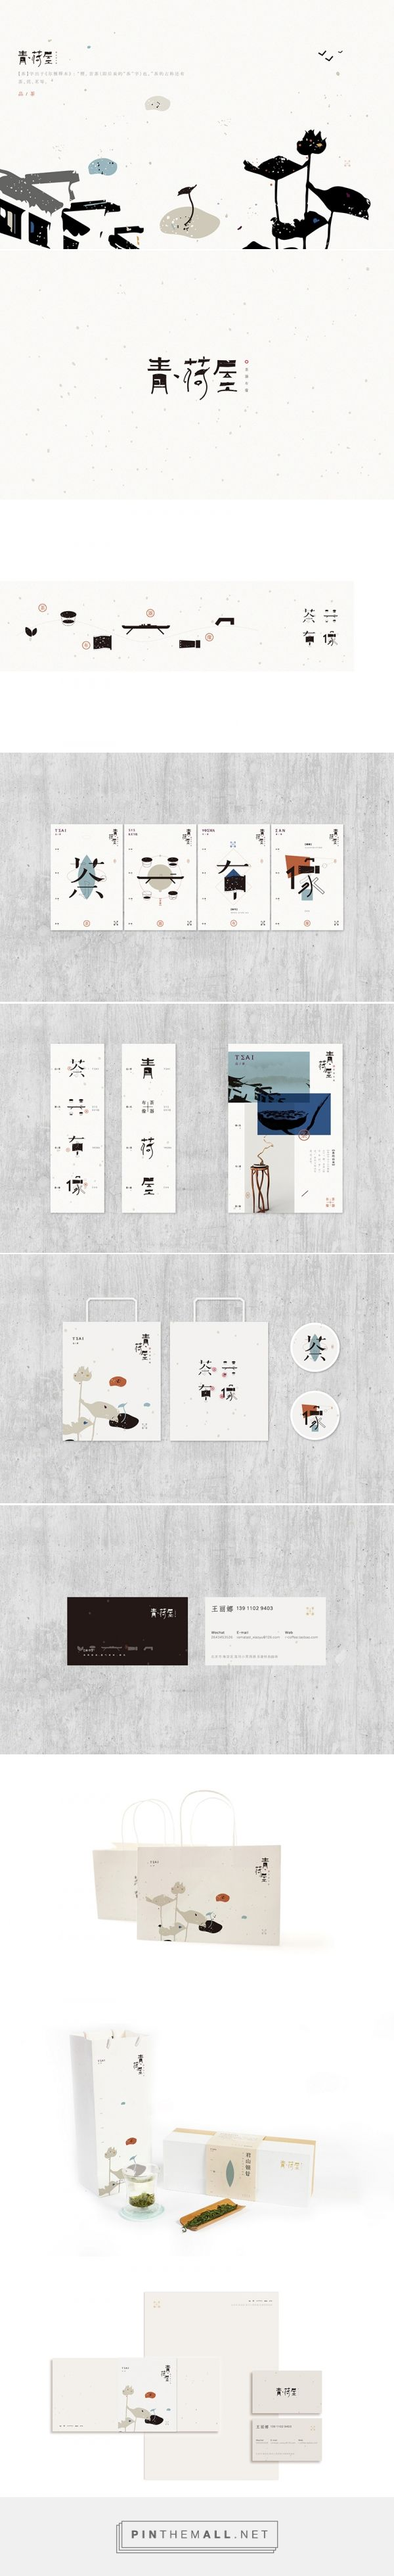 青荷屋品牌视觉设计 on Behance | Fivestar Branding – Design and Branding Agency & Inspiration Gallery